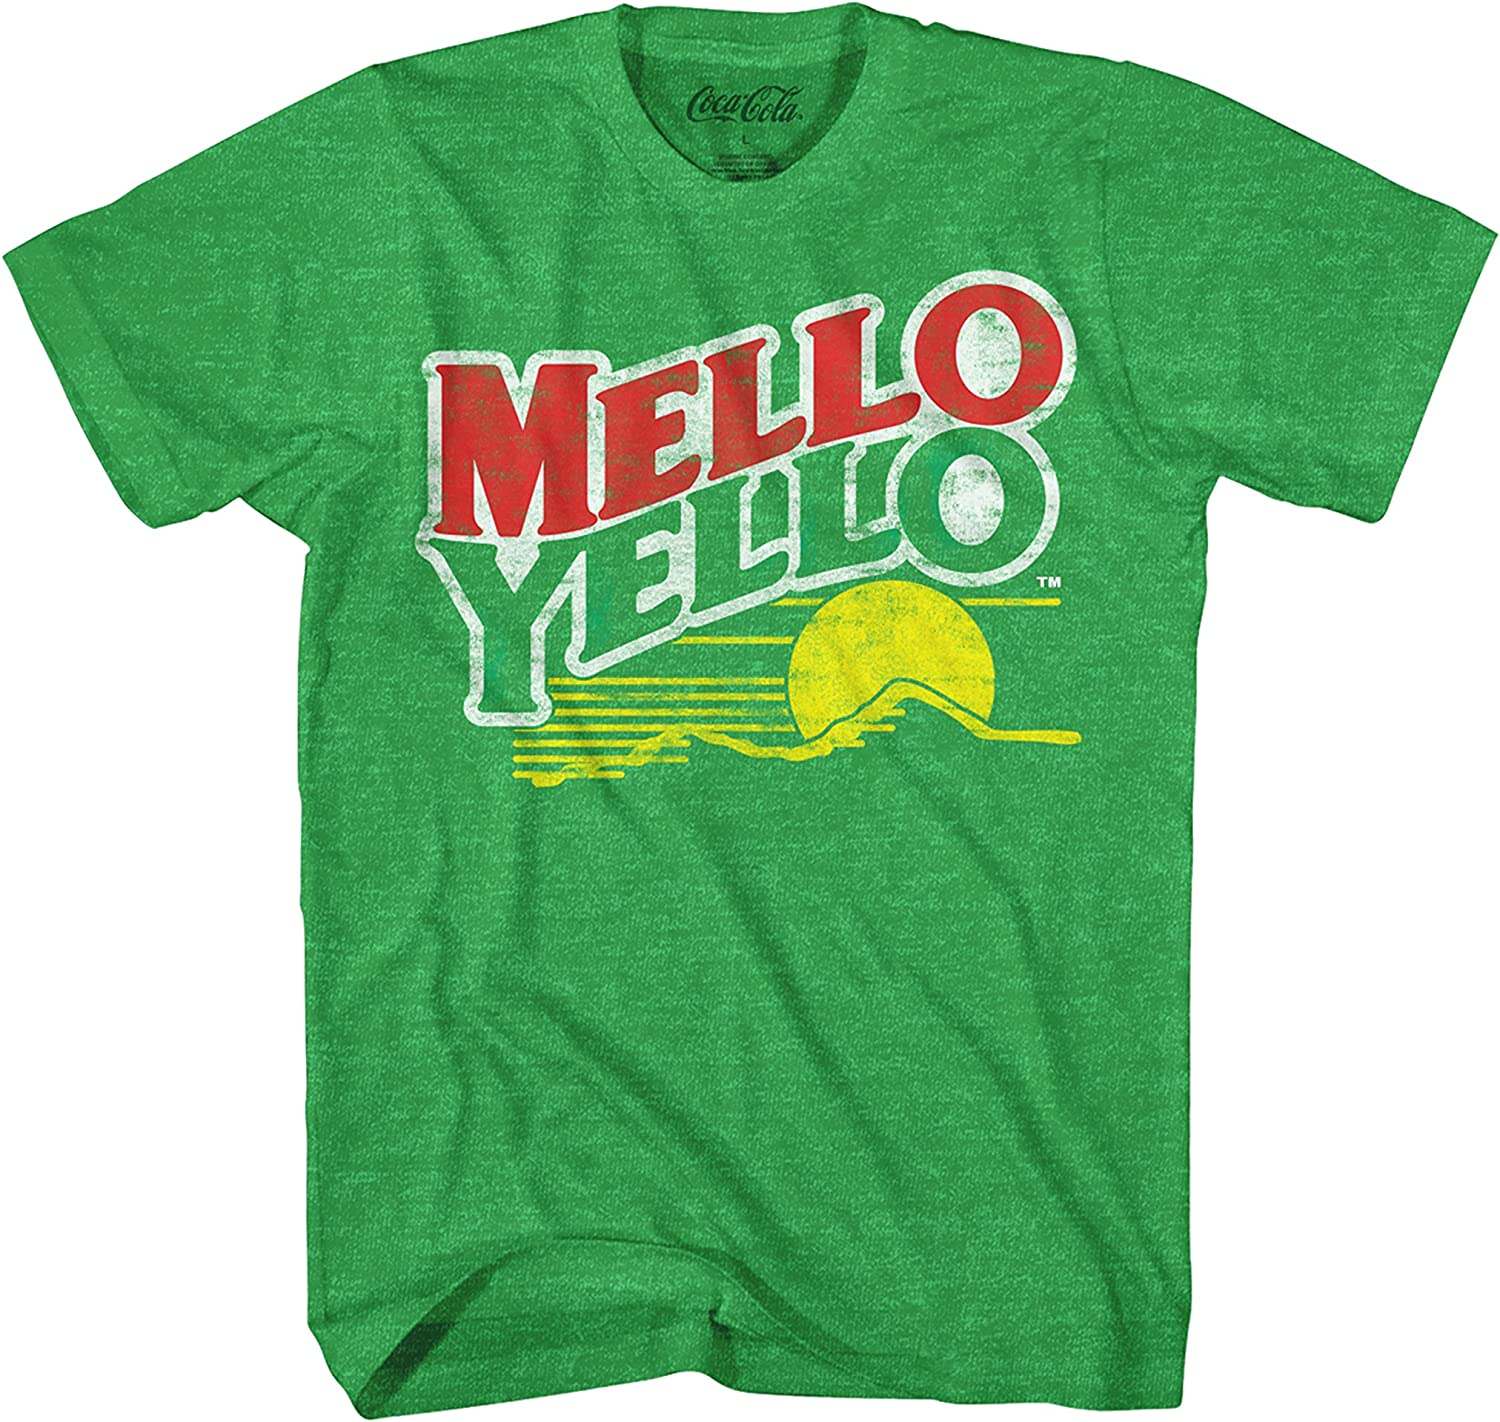 Coca-Cola Mello Yello Soda Pop Drink Funny Classic Vintage Mellow Yellow Apparel Logo Men's Adult Graphic Tee T-Shirt